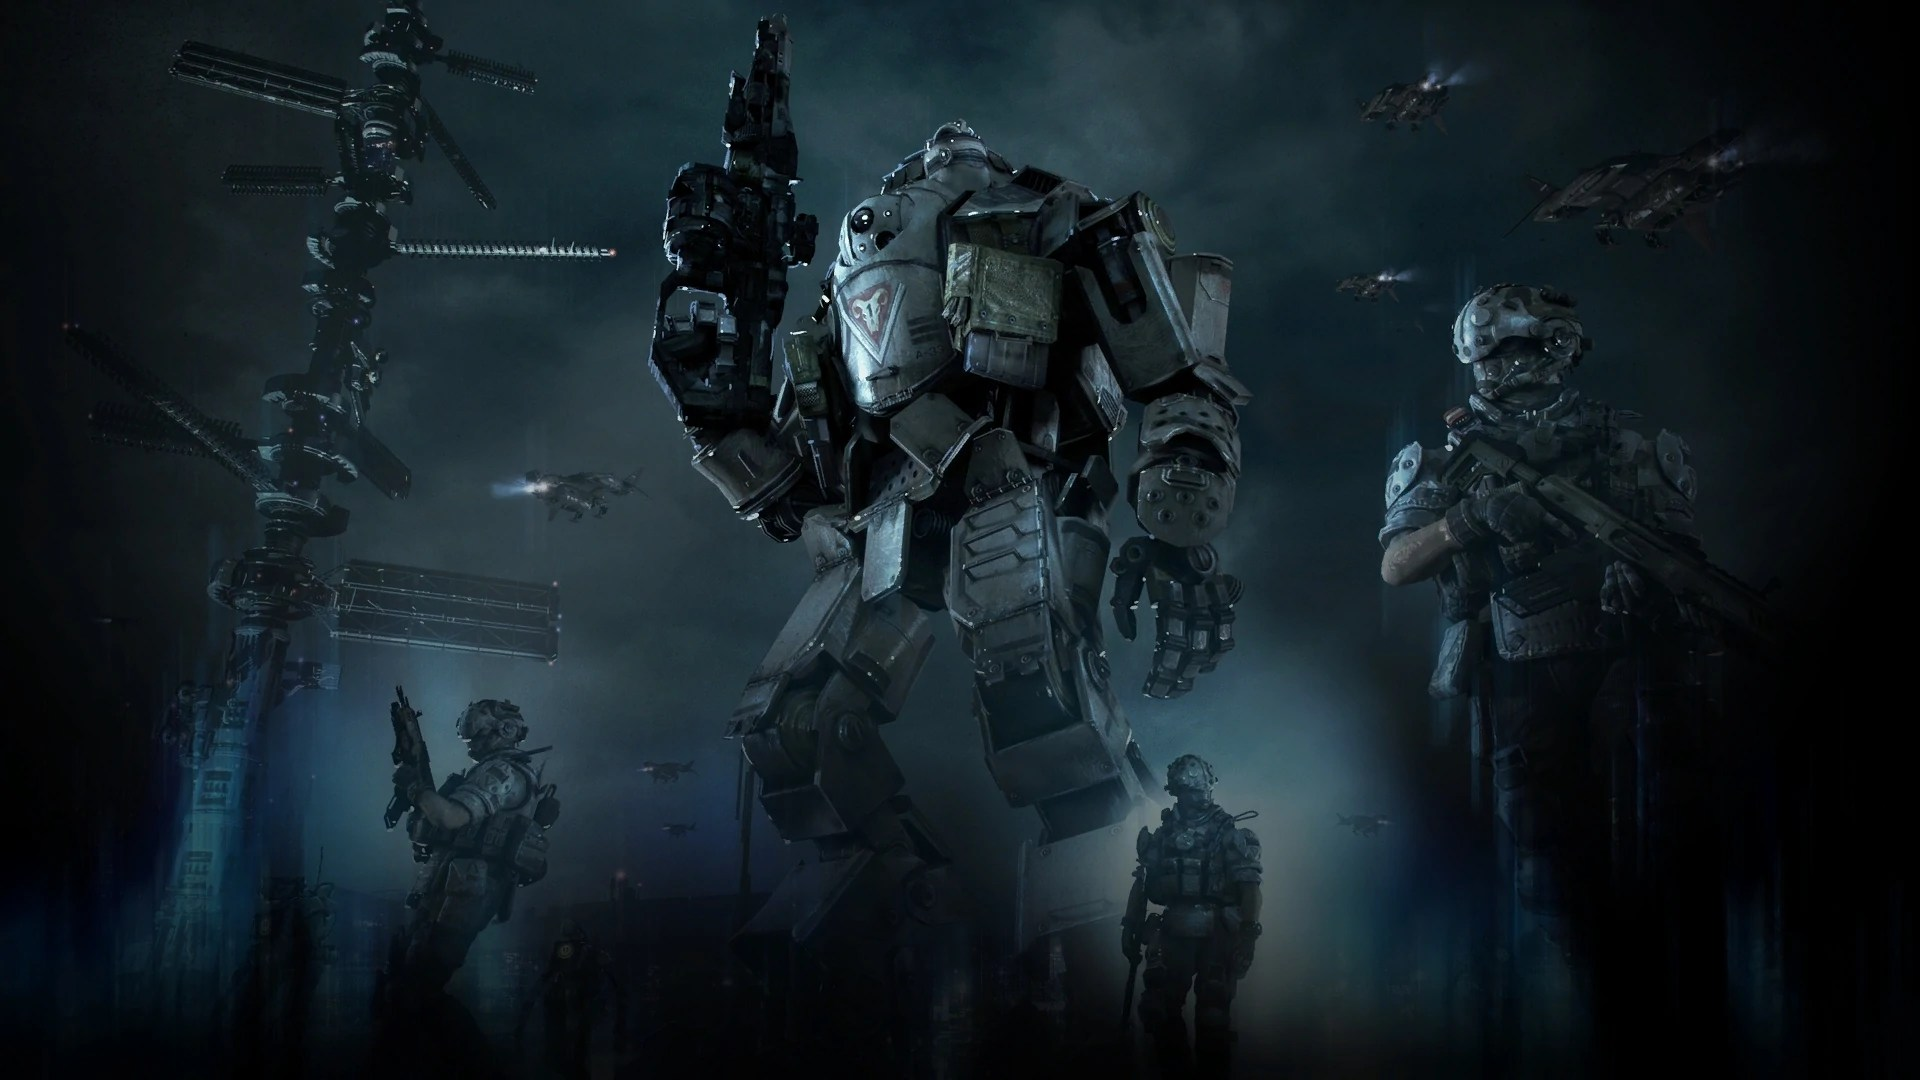 Fall 1080p Wallpaper The Three Towers Titanfall Wiki Fandom Powered By Wikia